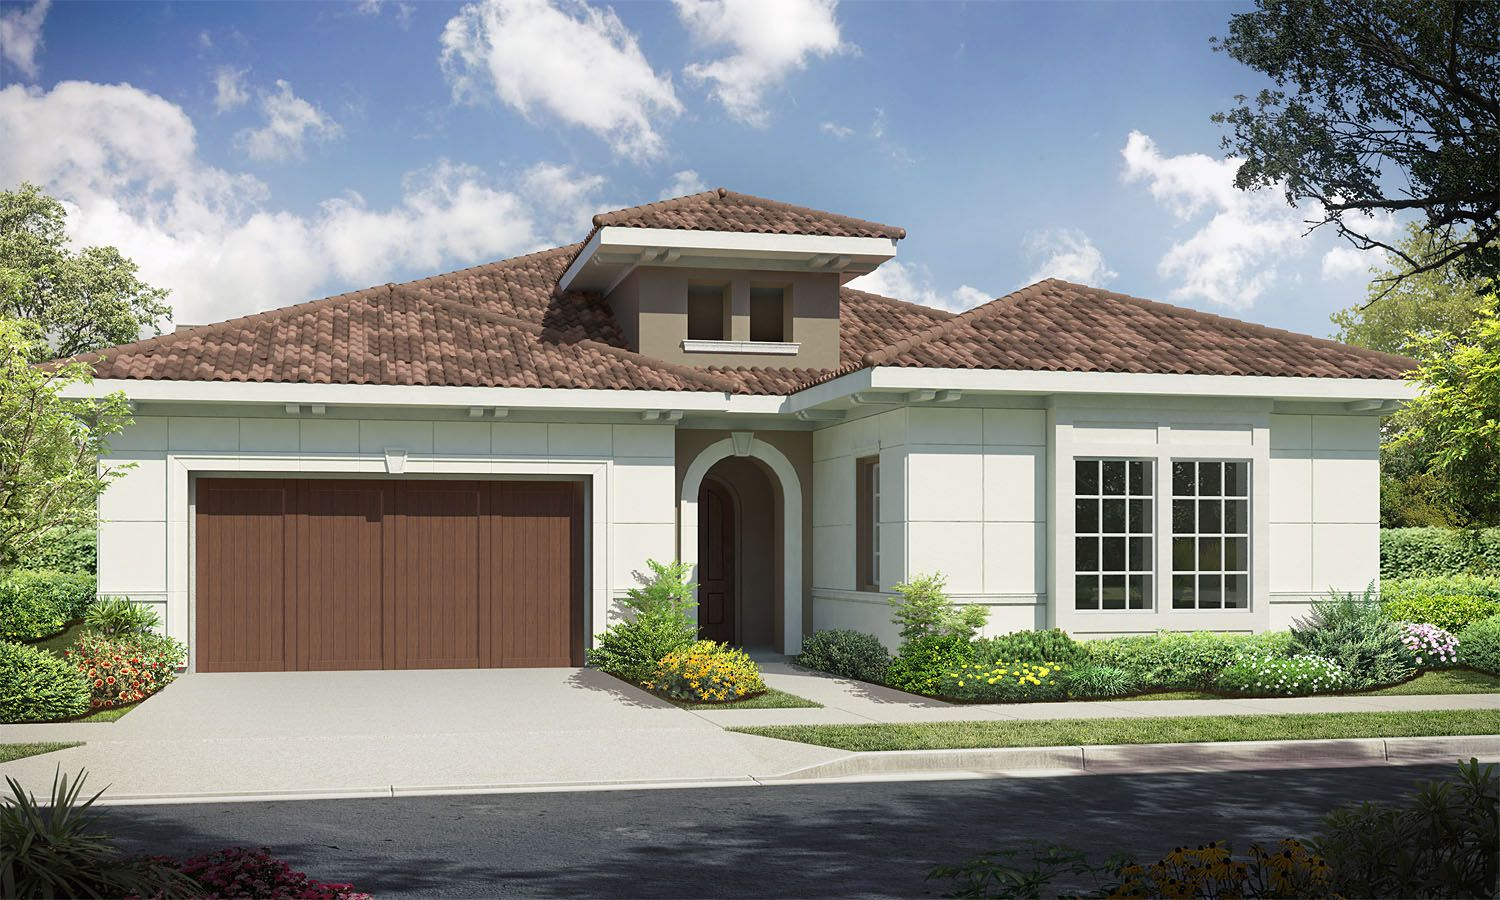 Single Family for Sale at The Oaks At Portola Hills - Residence 5 1582 Sunset View Drive Lake Forest, California 92630 United States